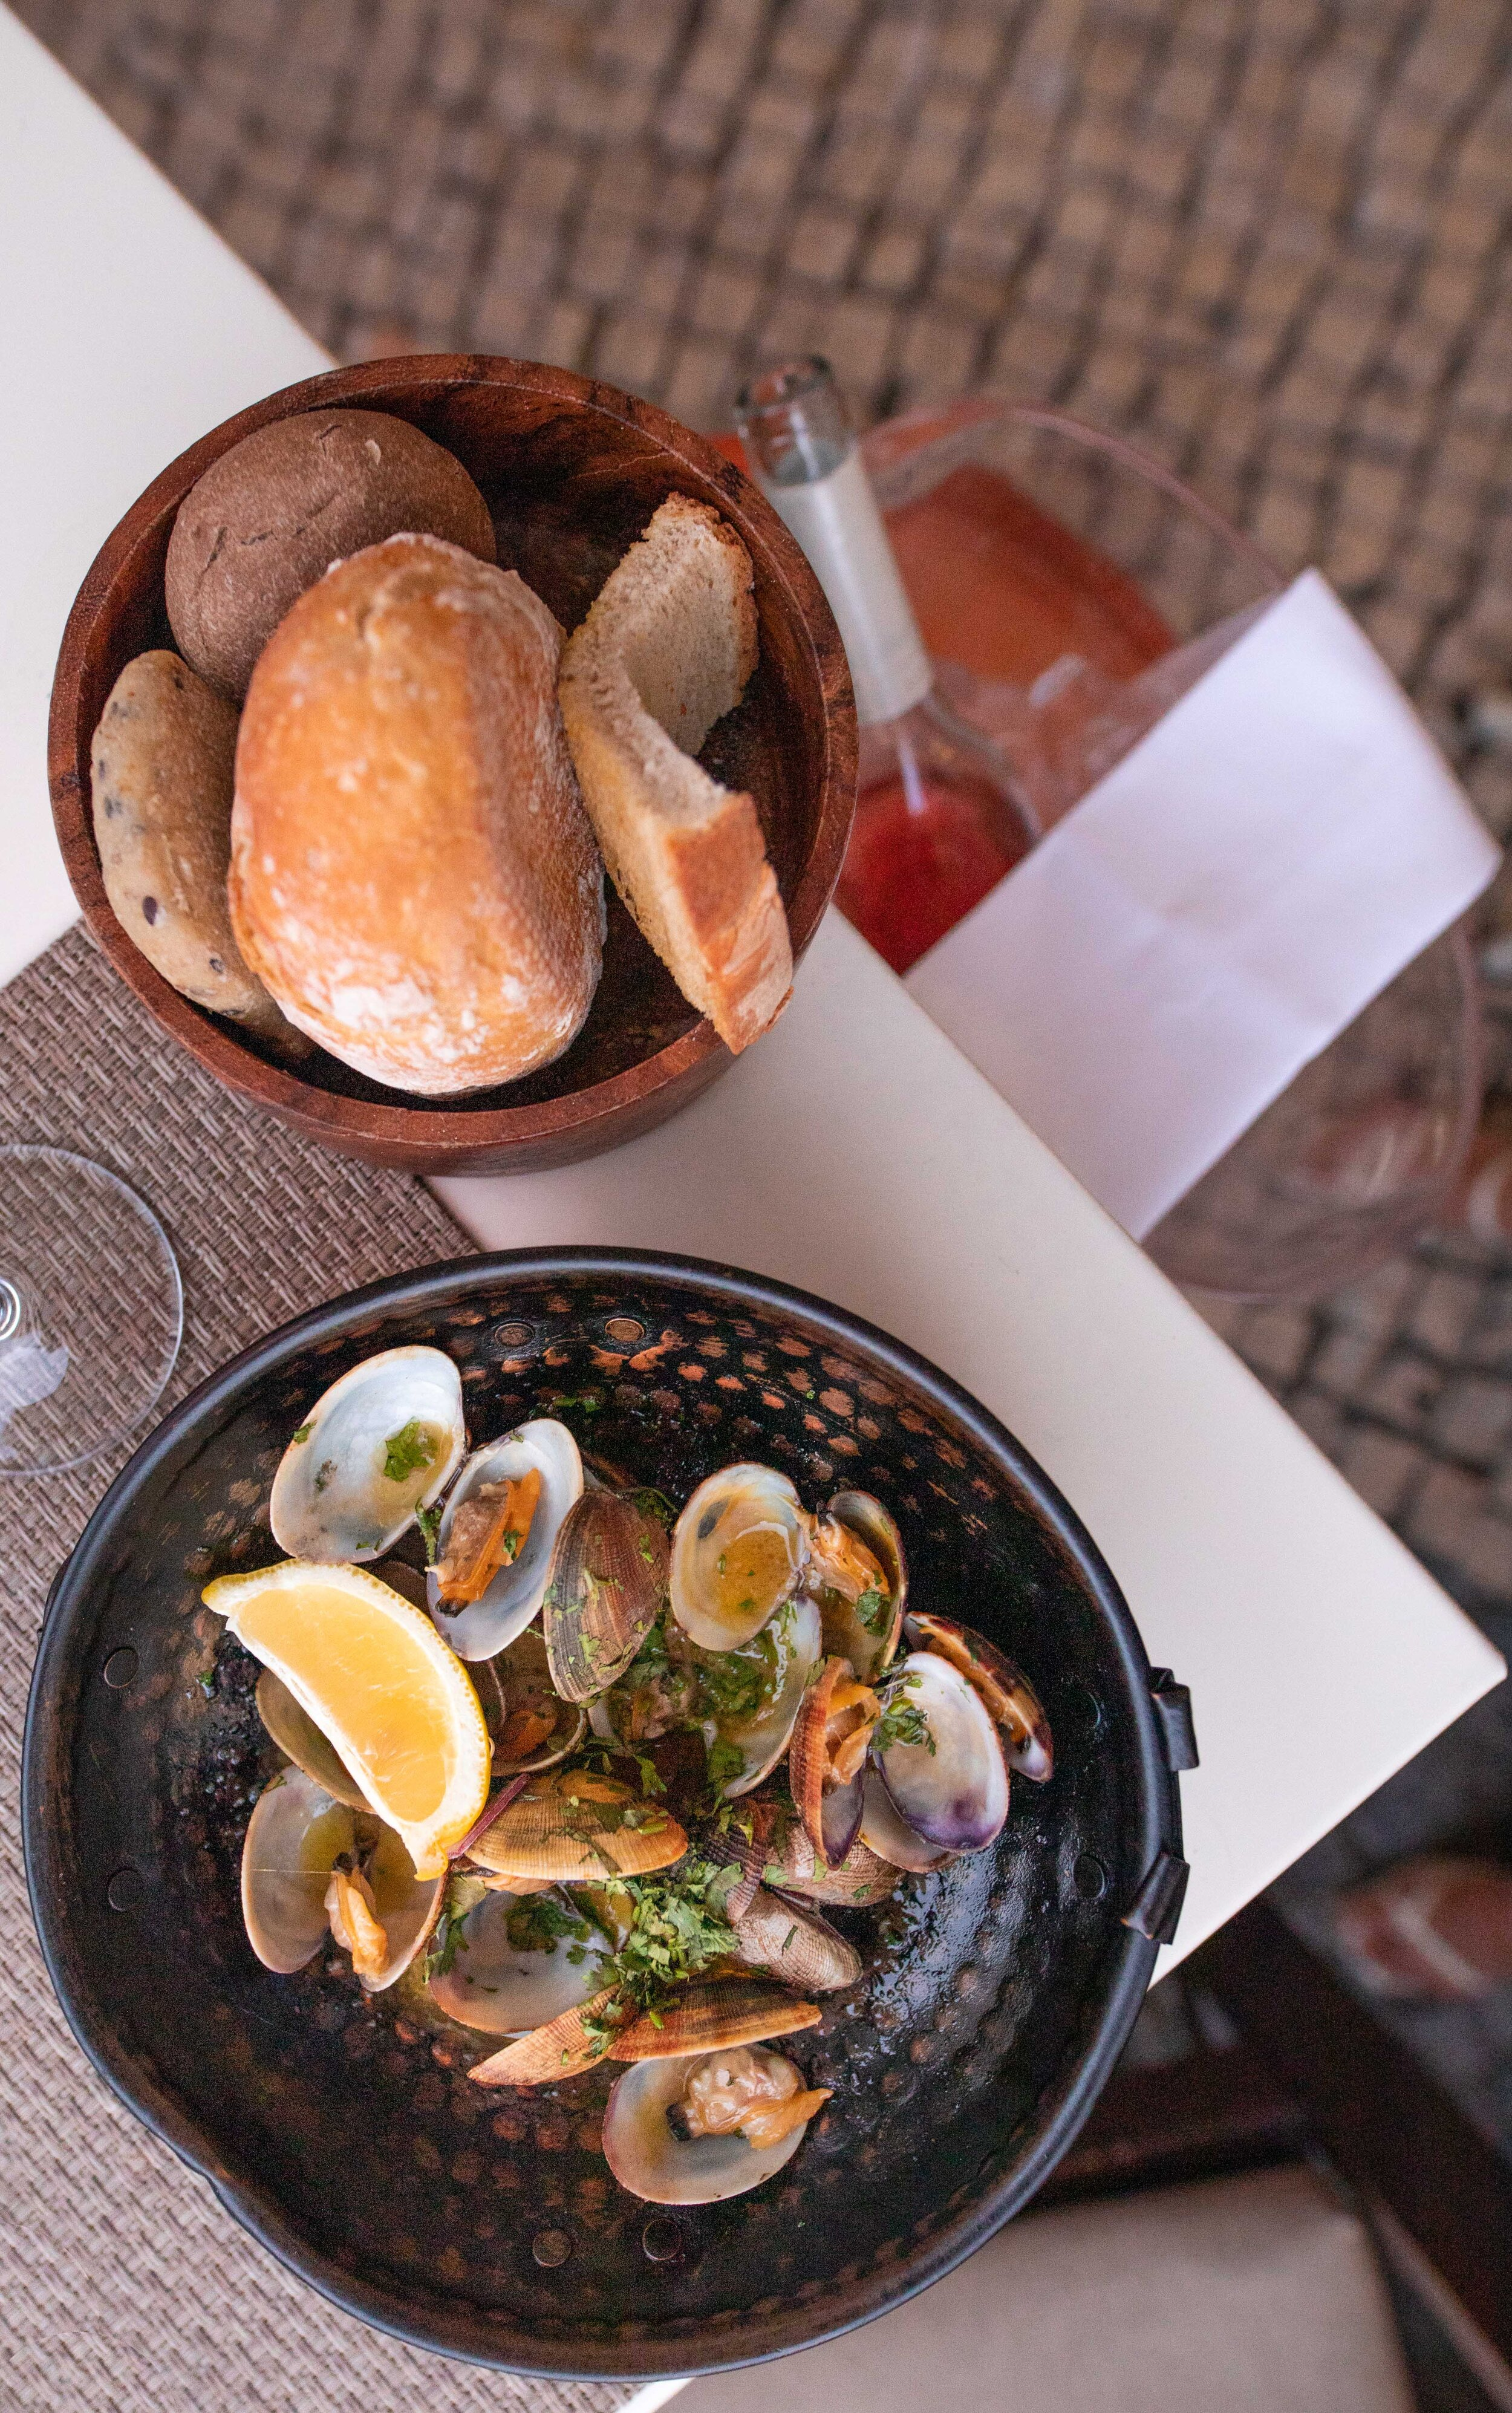 Bulhao Pato Clams cooked in Cataplana  sauteed in olive oil , garlic and coriandar